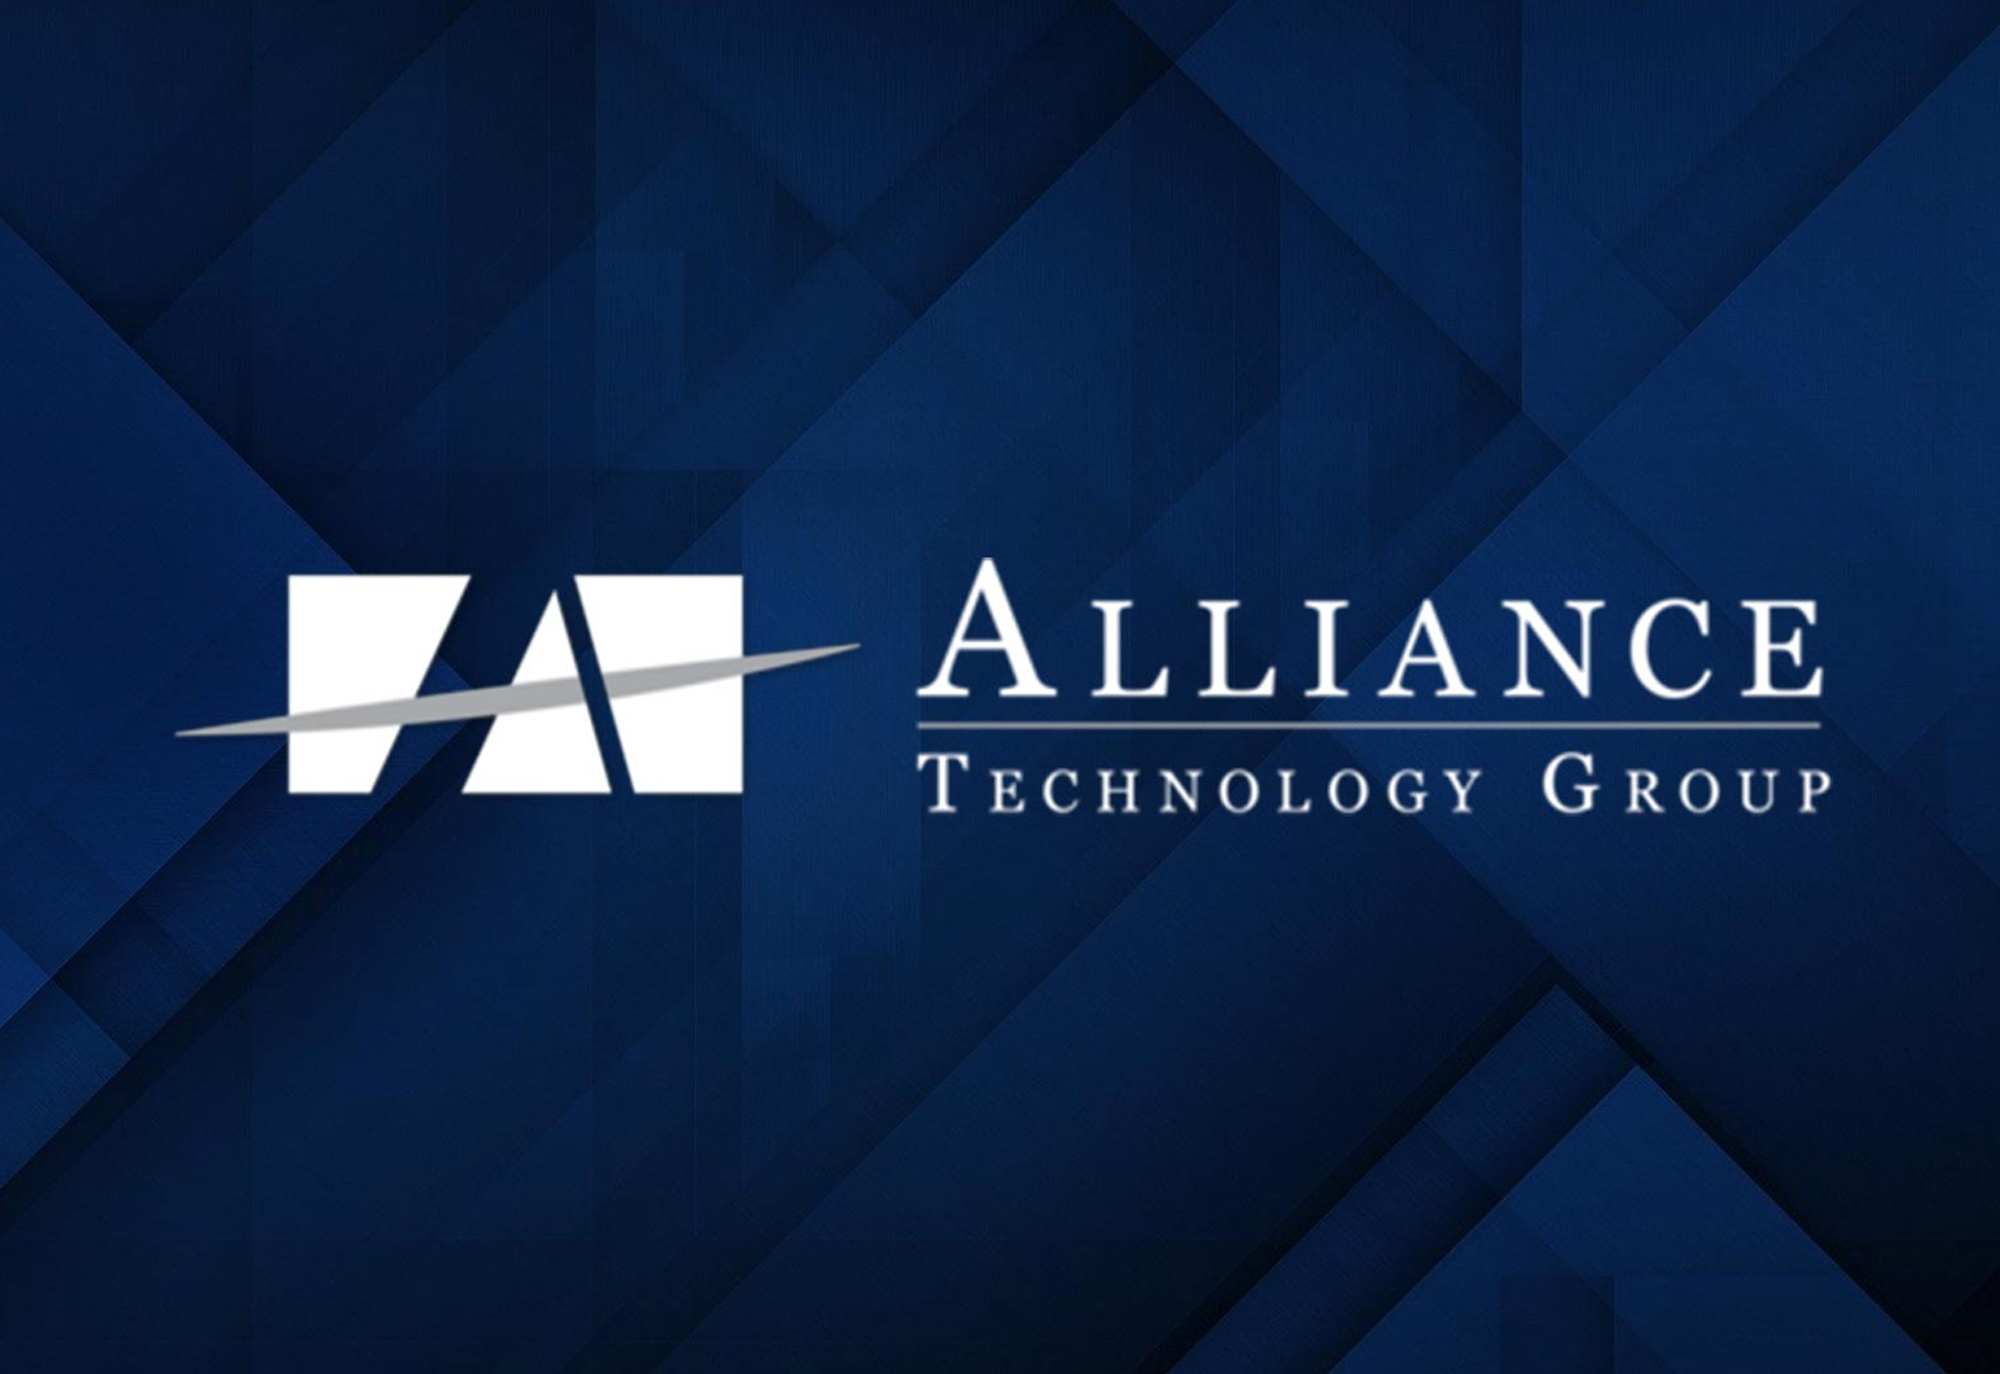 Alliance Technology Group Chooses Rekor for Vehicle Recognition Solutions in Commercial and Governmental Markets Nationwide